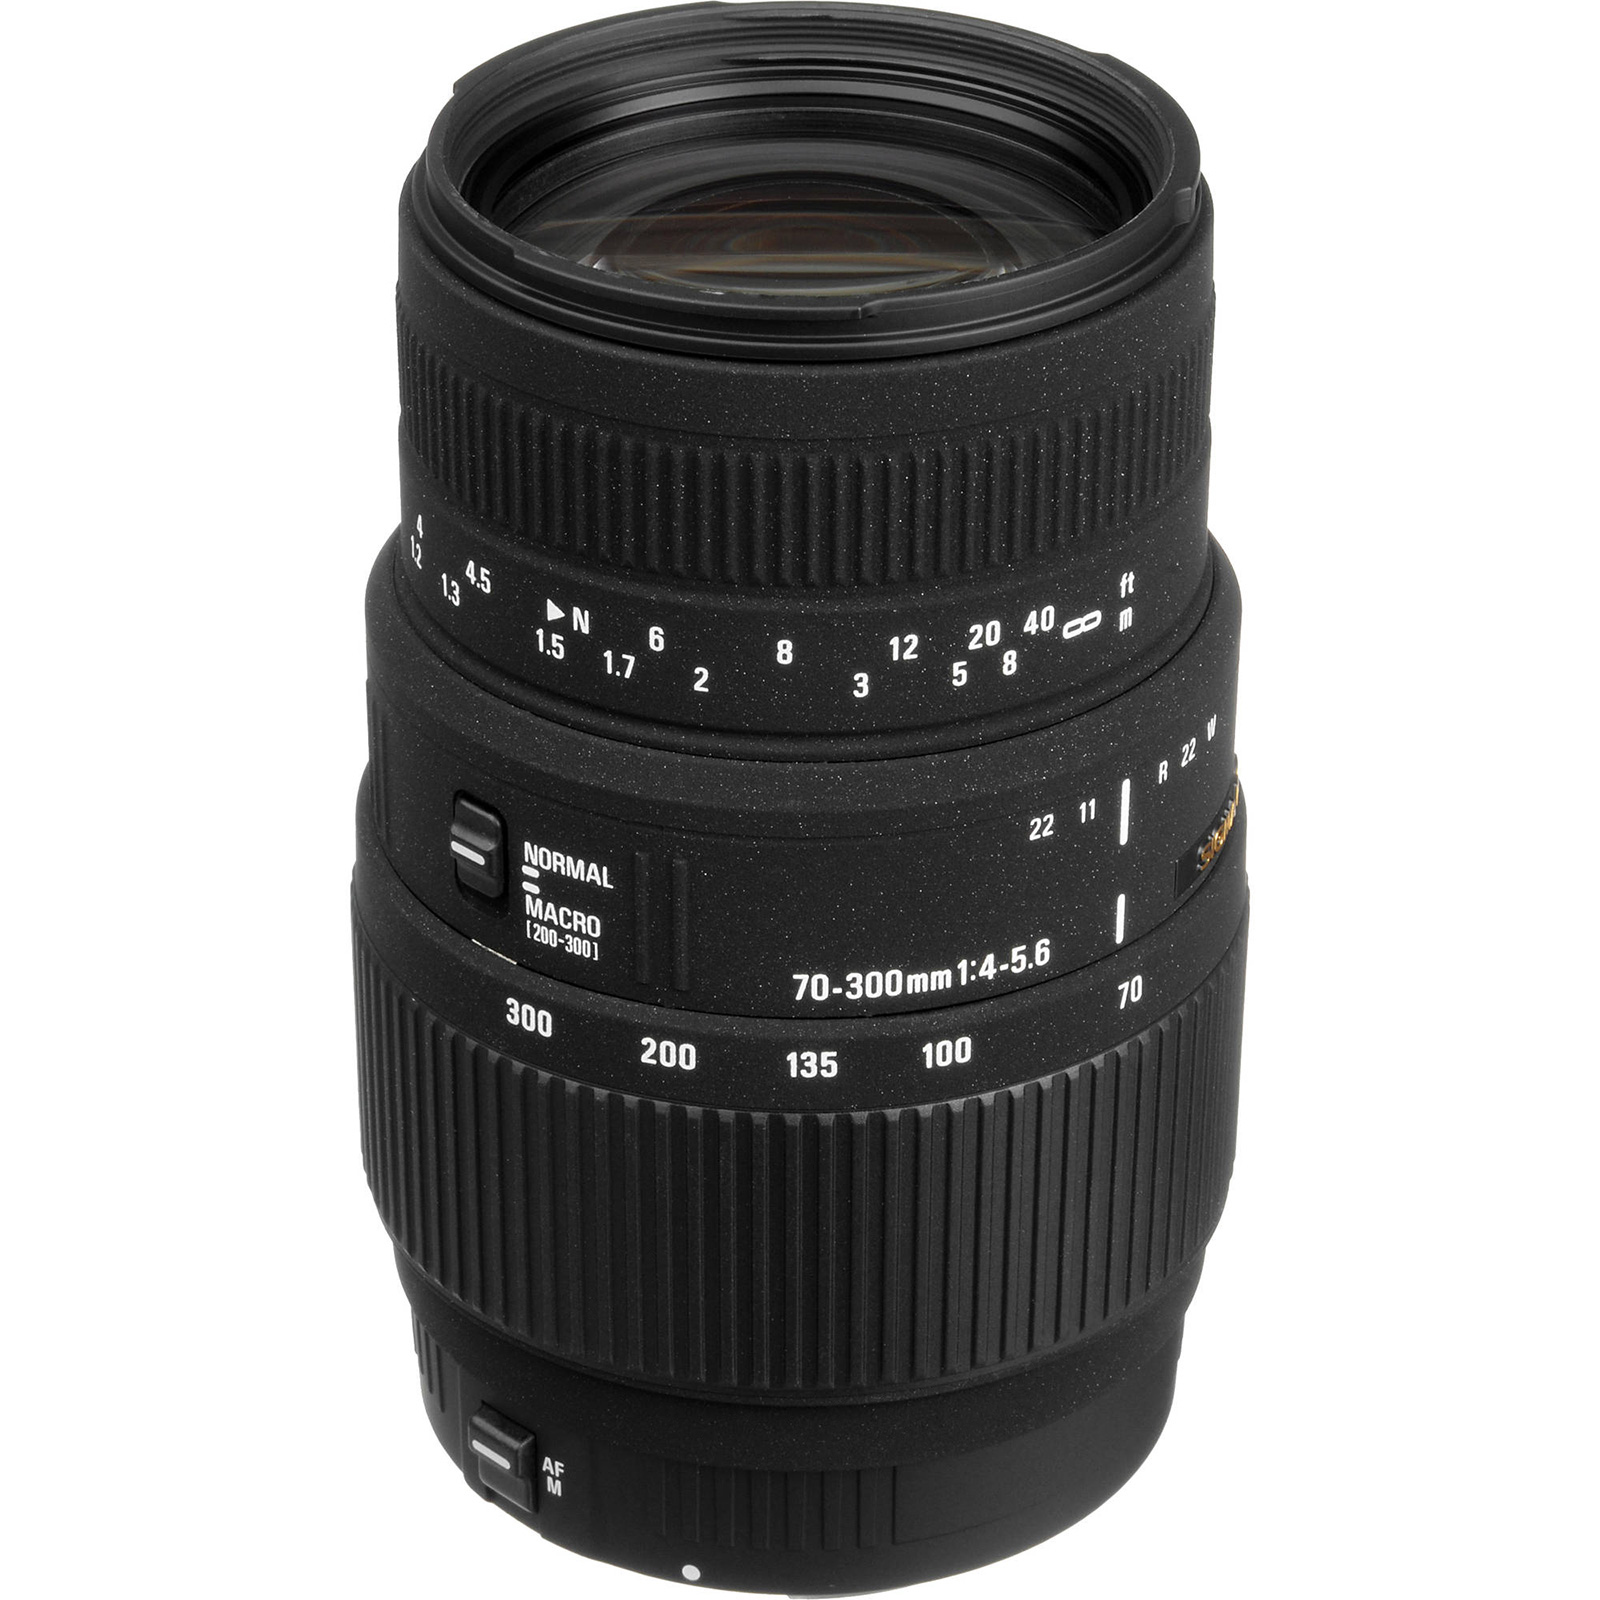 Sigma 70-300mm f/4.0-5.6 DG Macro Zoom Lens (for Canon EOS Cameras)